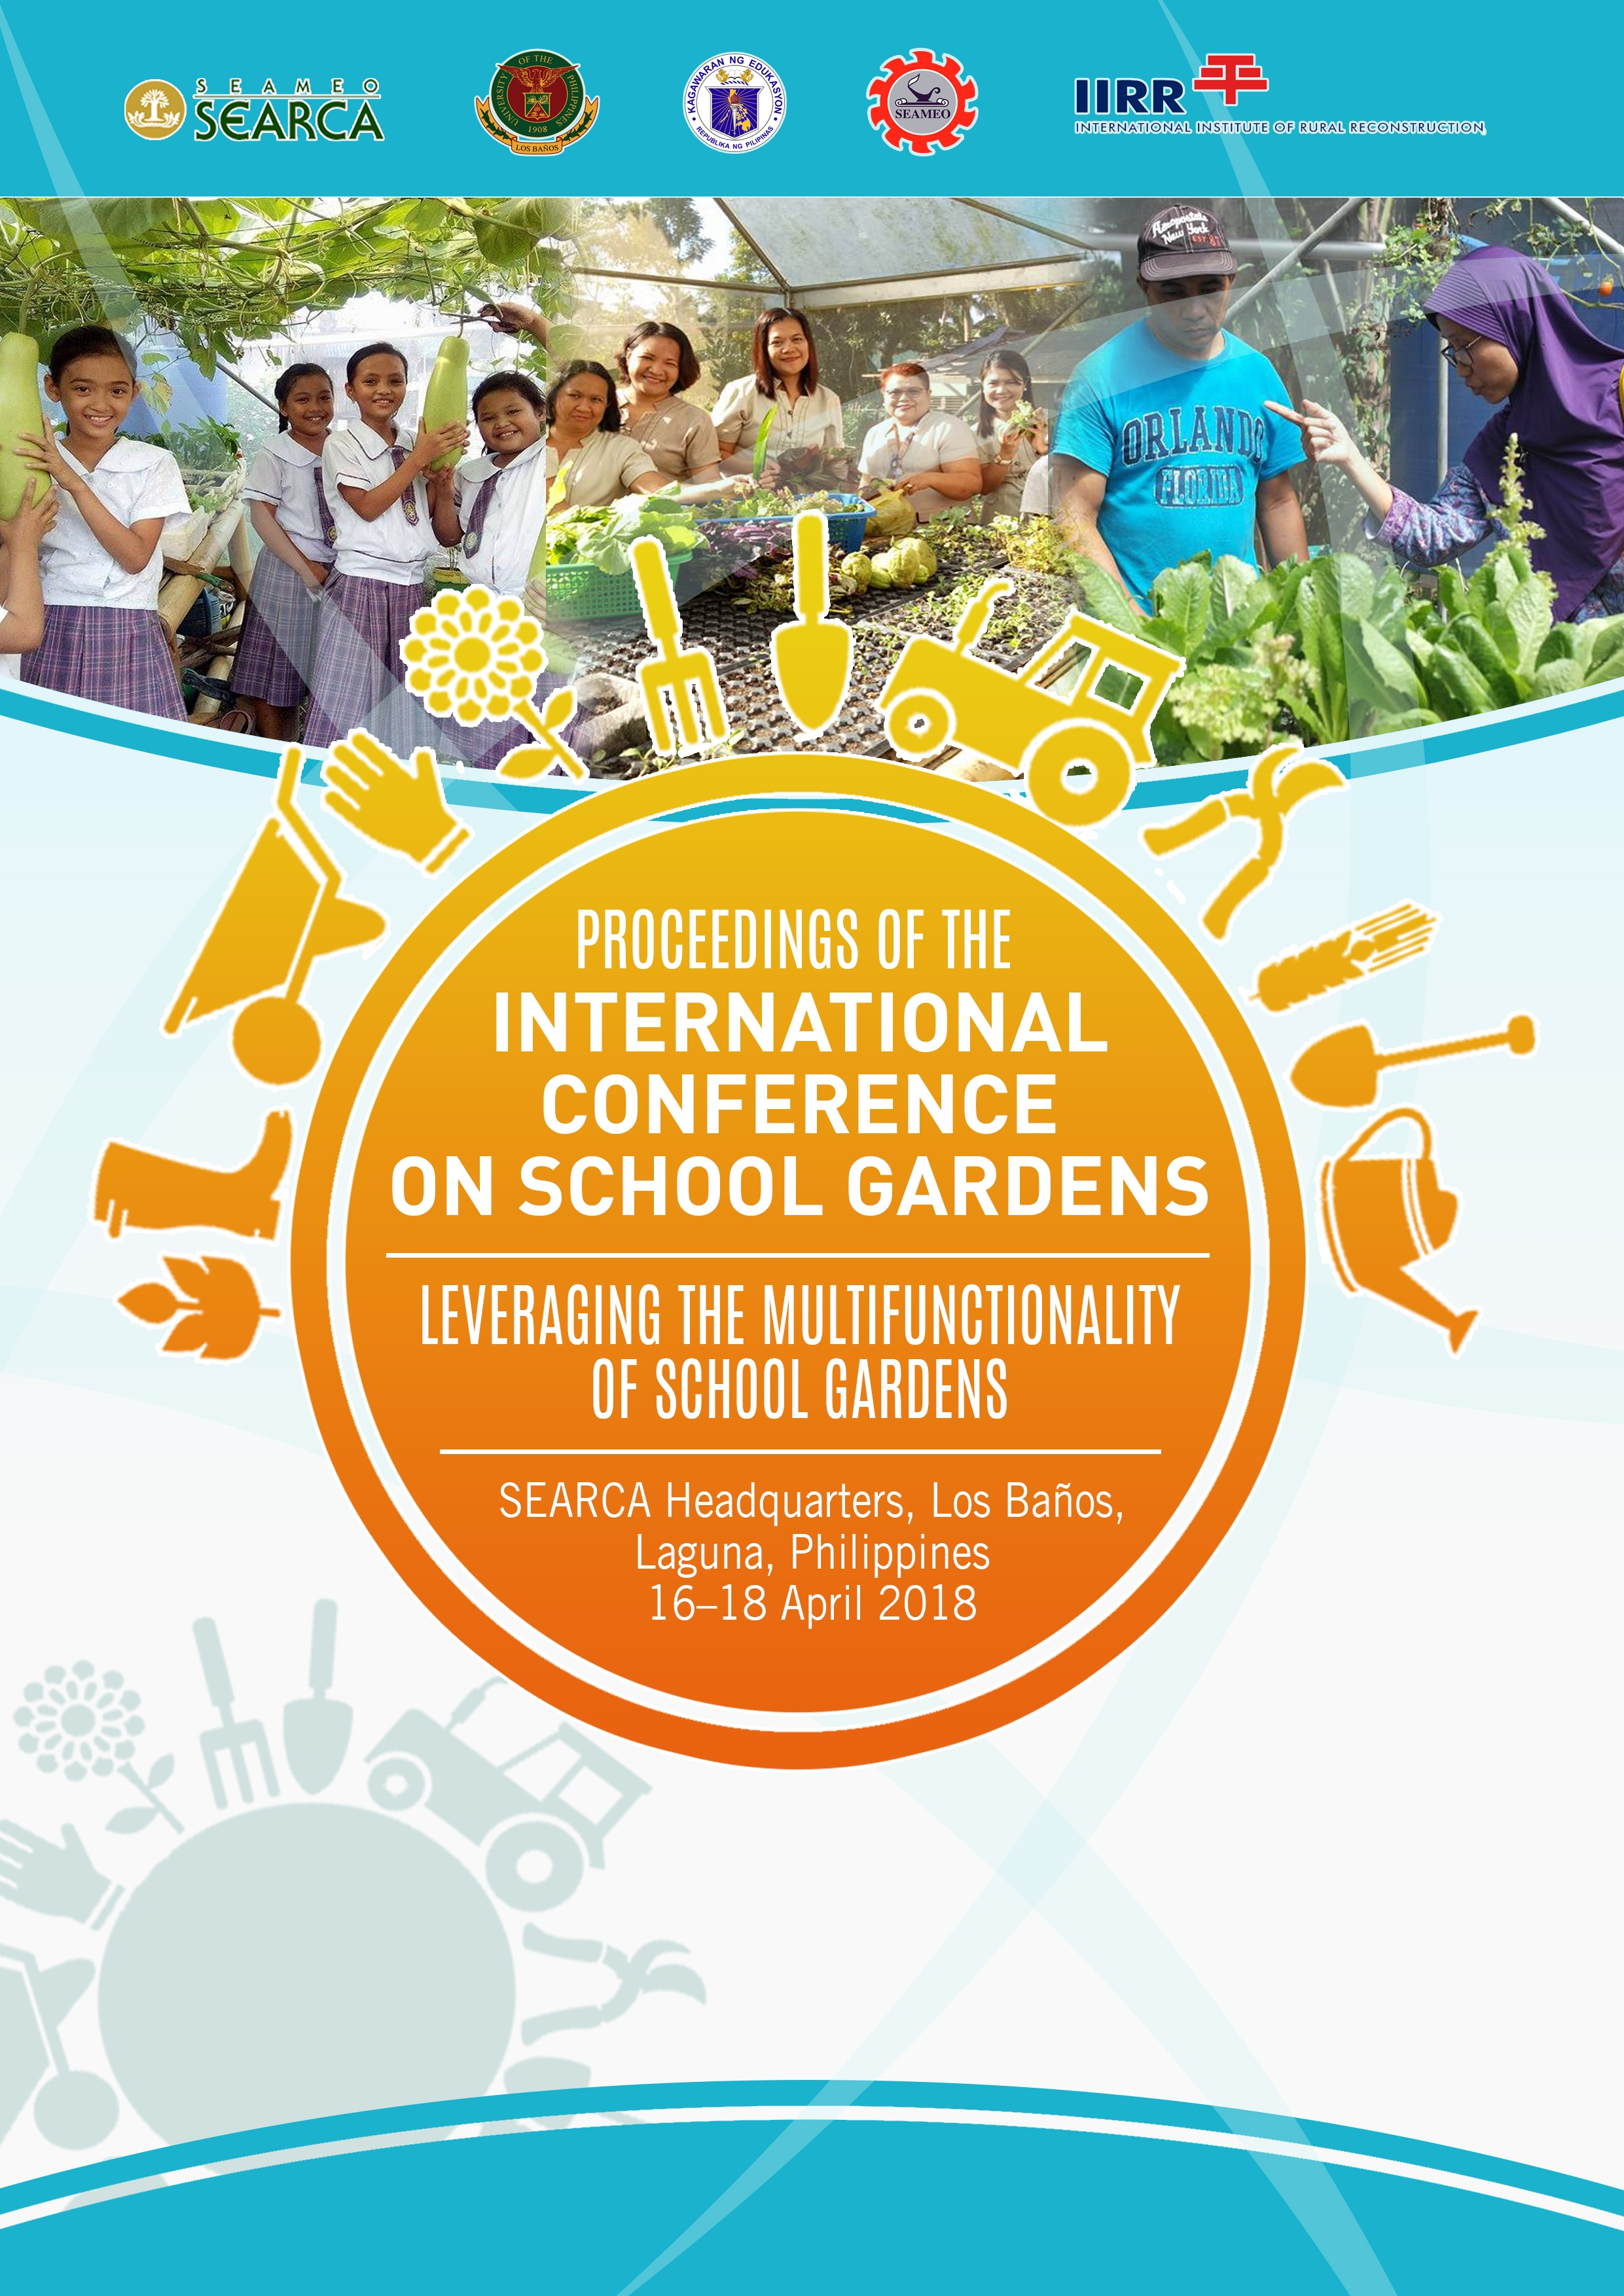 Proceedings of the International Conference on School Gardens: Leveraging the Multifunctionality of School Gardens